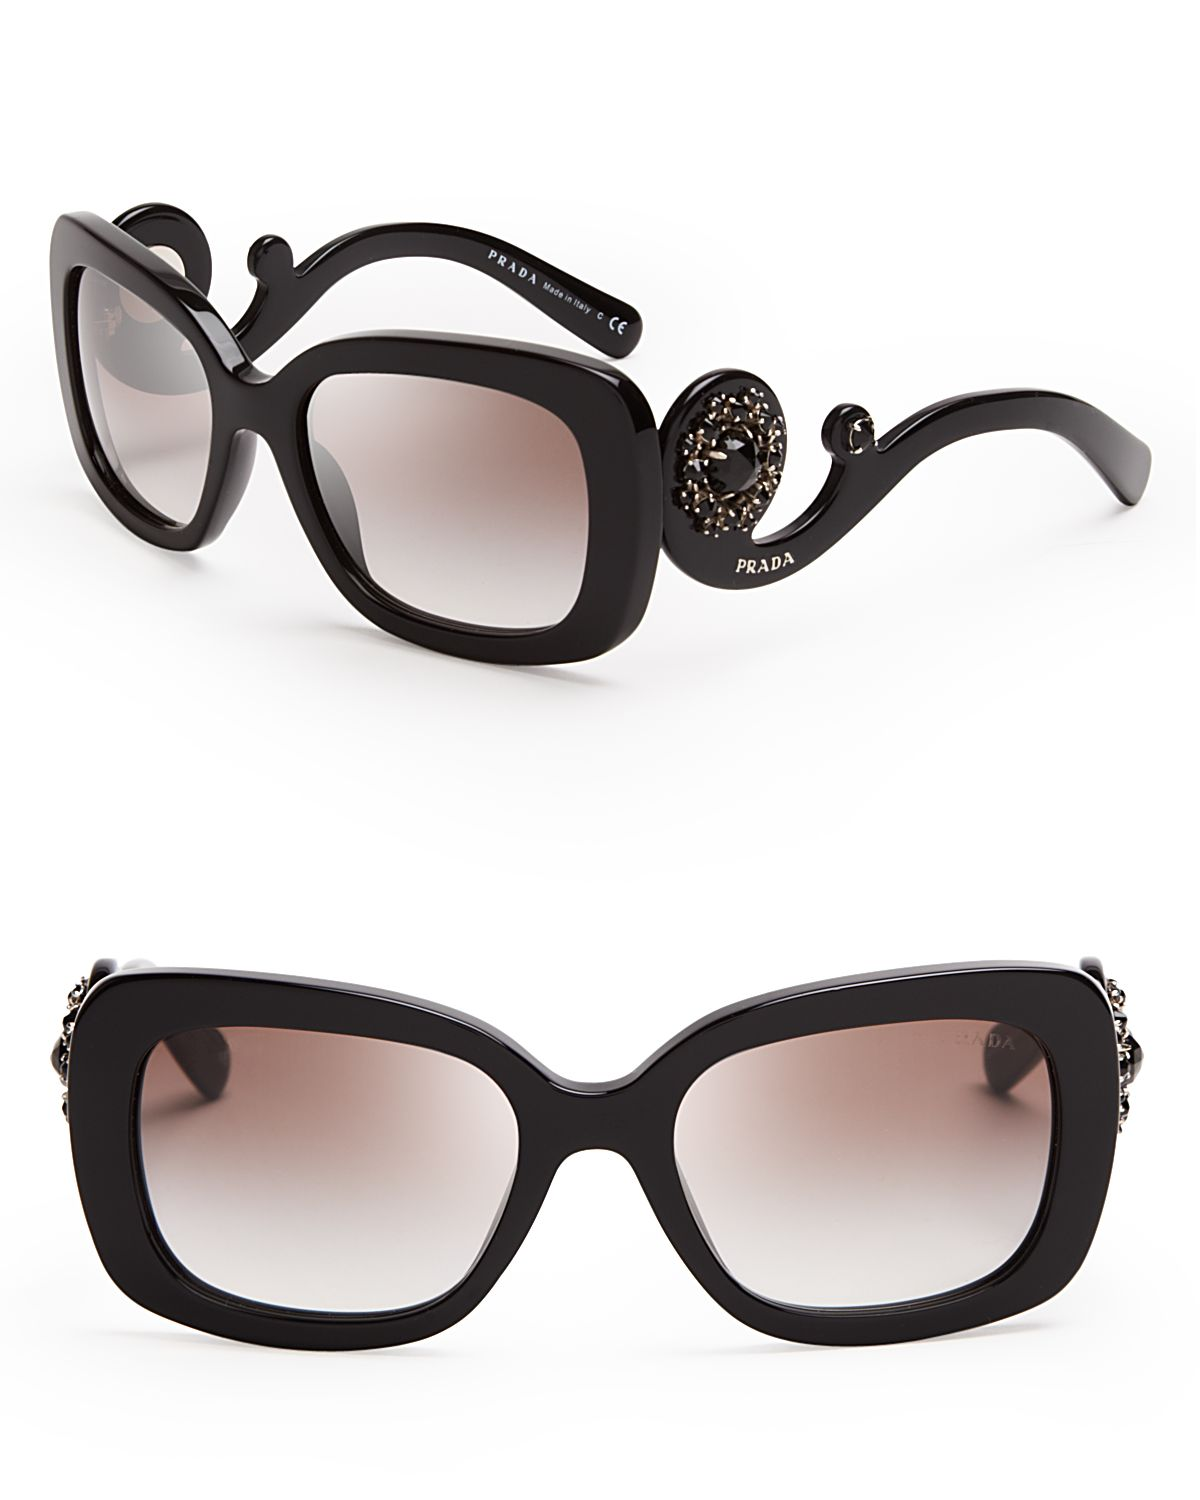 ffeea858f0 ... canada lyst prada absolute baroque crystal square sunglasses in black  4655f e7c09